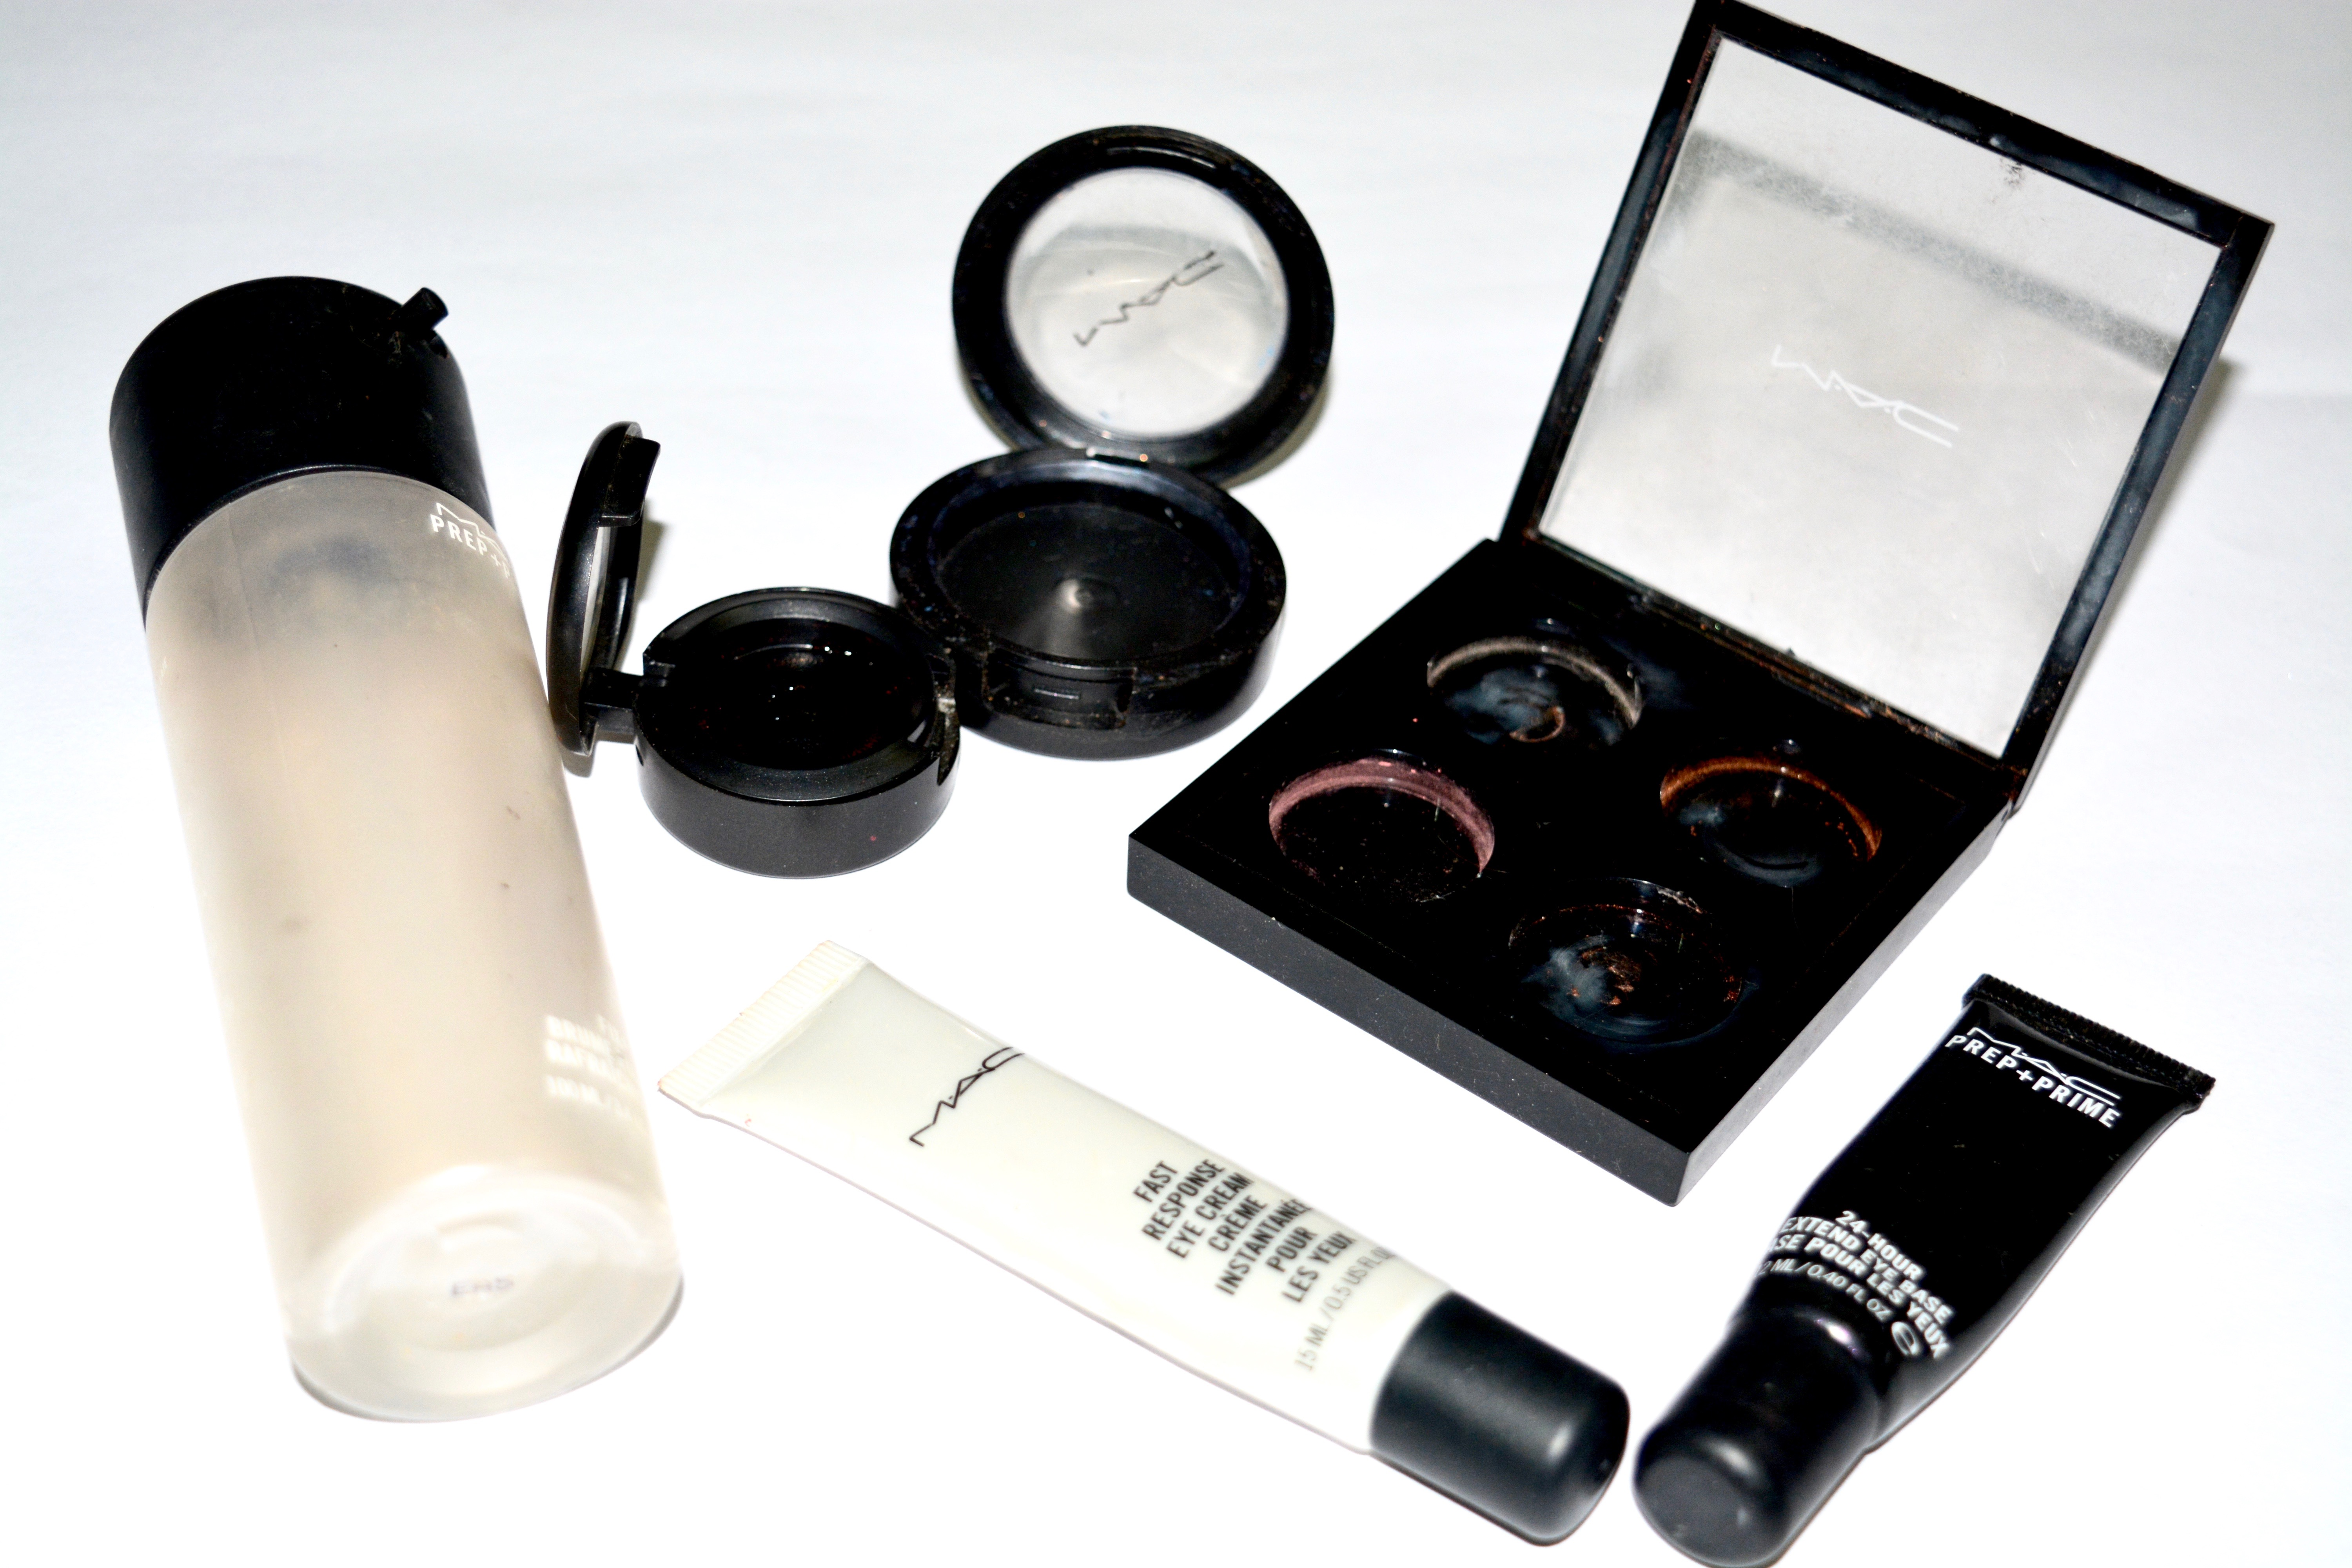 can you back to mac limited edition products